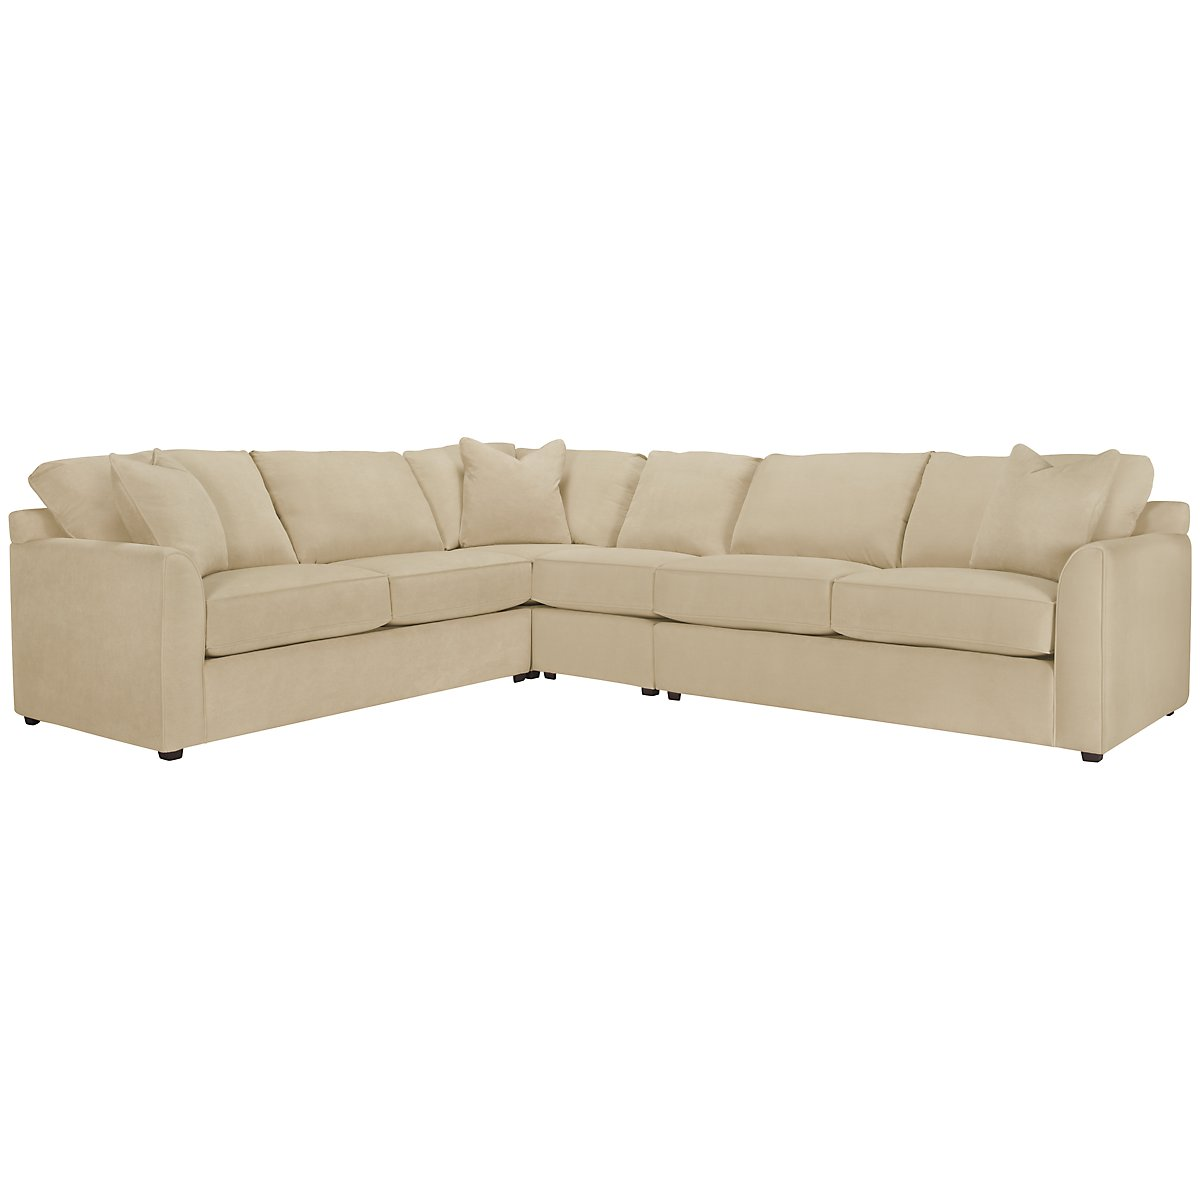 Express3 Light Beige Microfiber Large Two-Arm Sectional